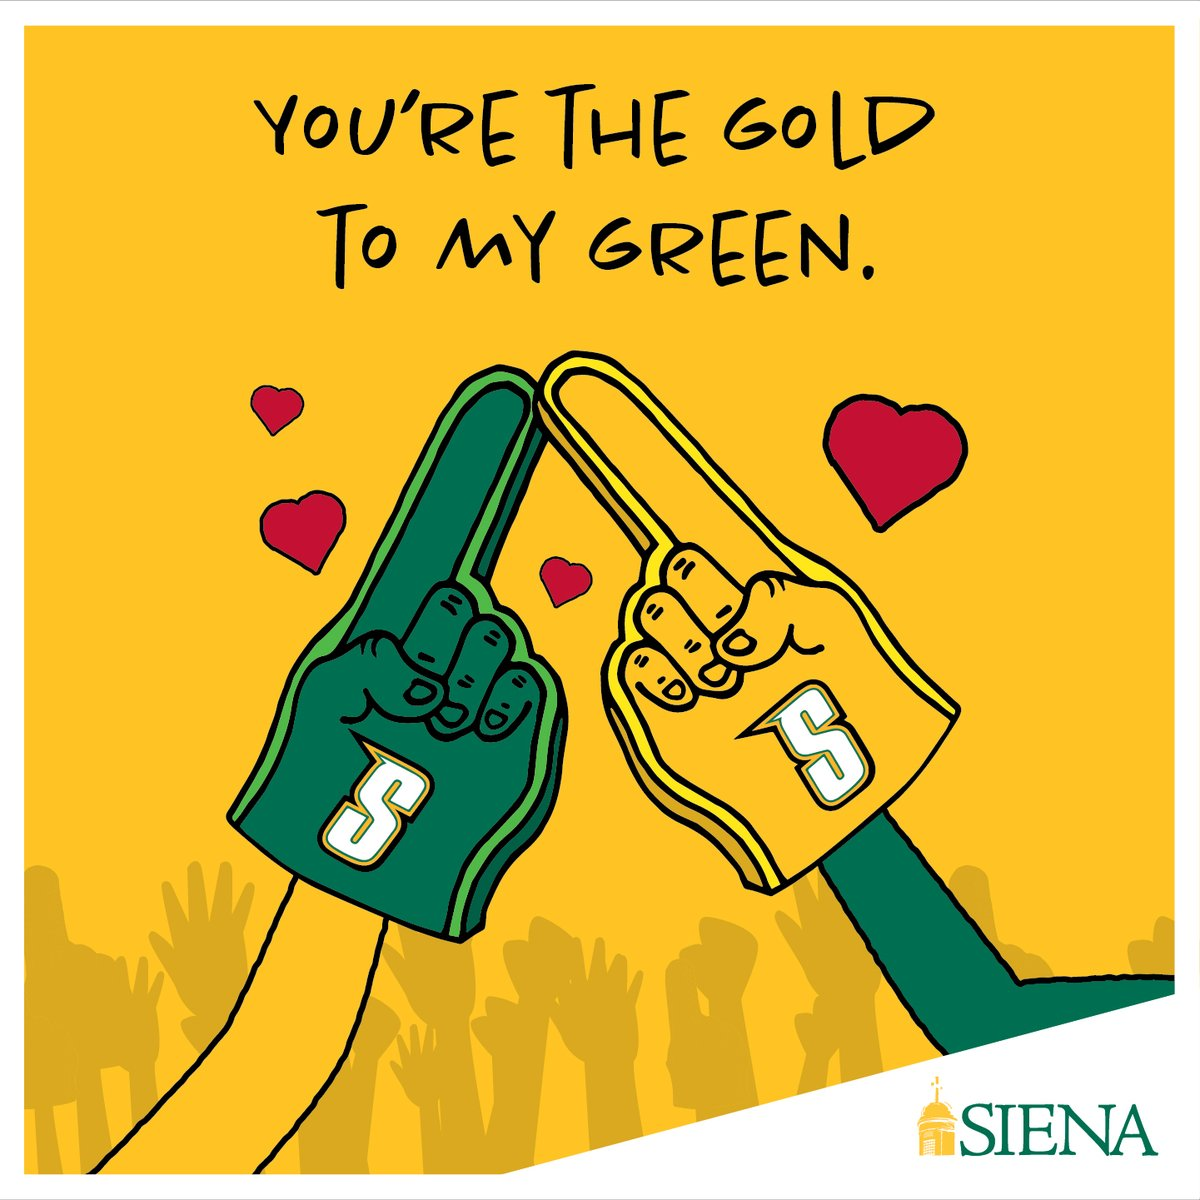 Share some Saint love by tweeting these virtual cards to your friends, family, and valentines! 💛💚